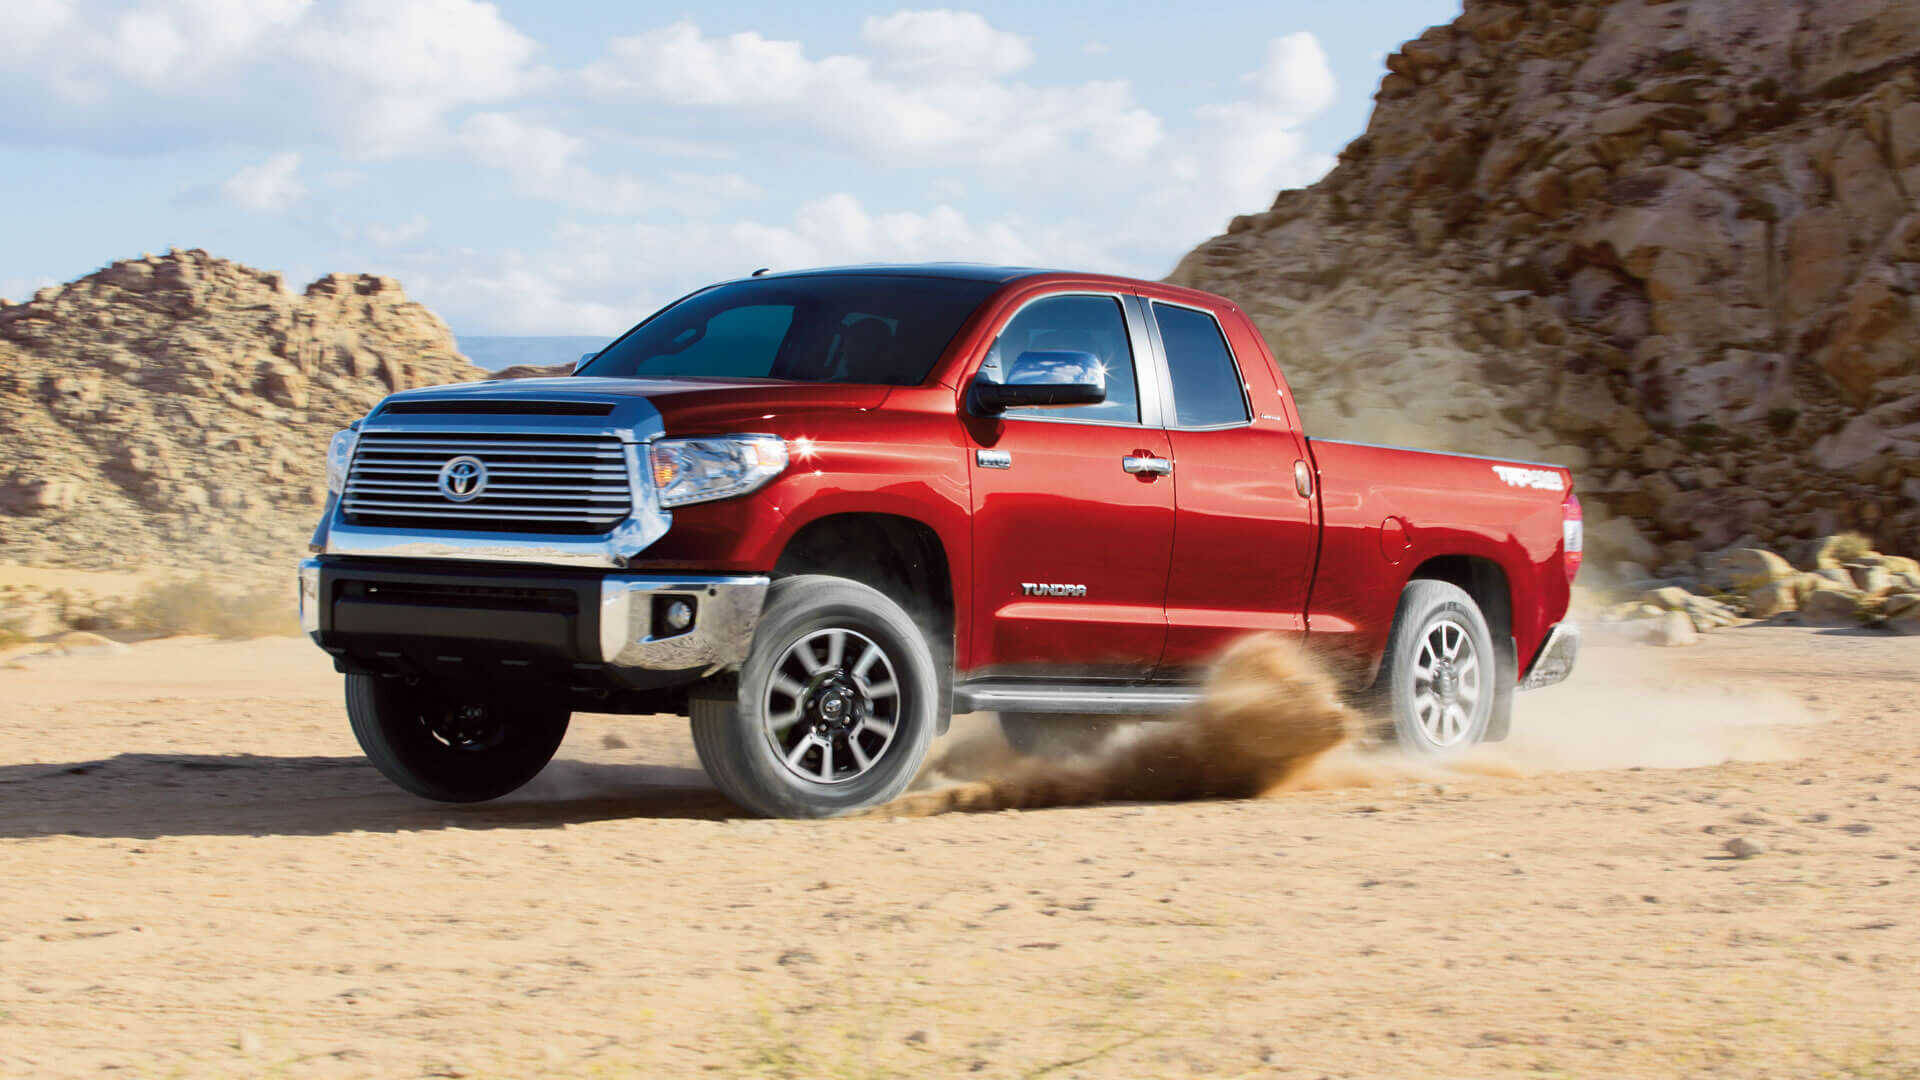 2016 Toyota Tundra in the dirt